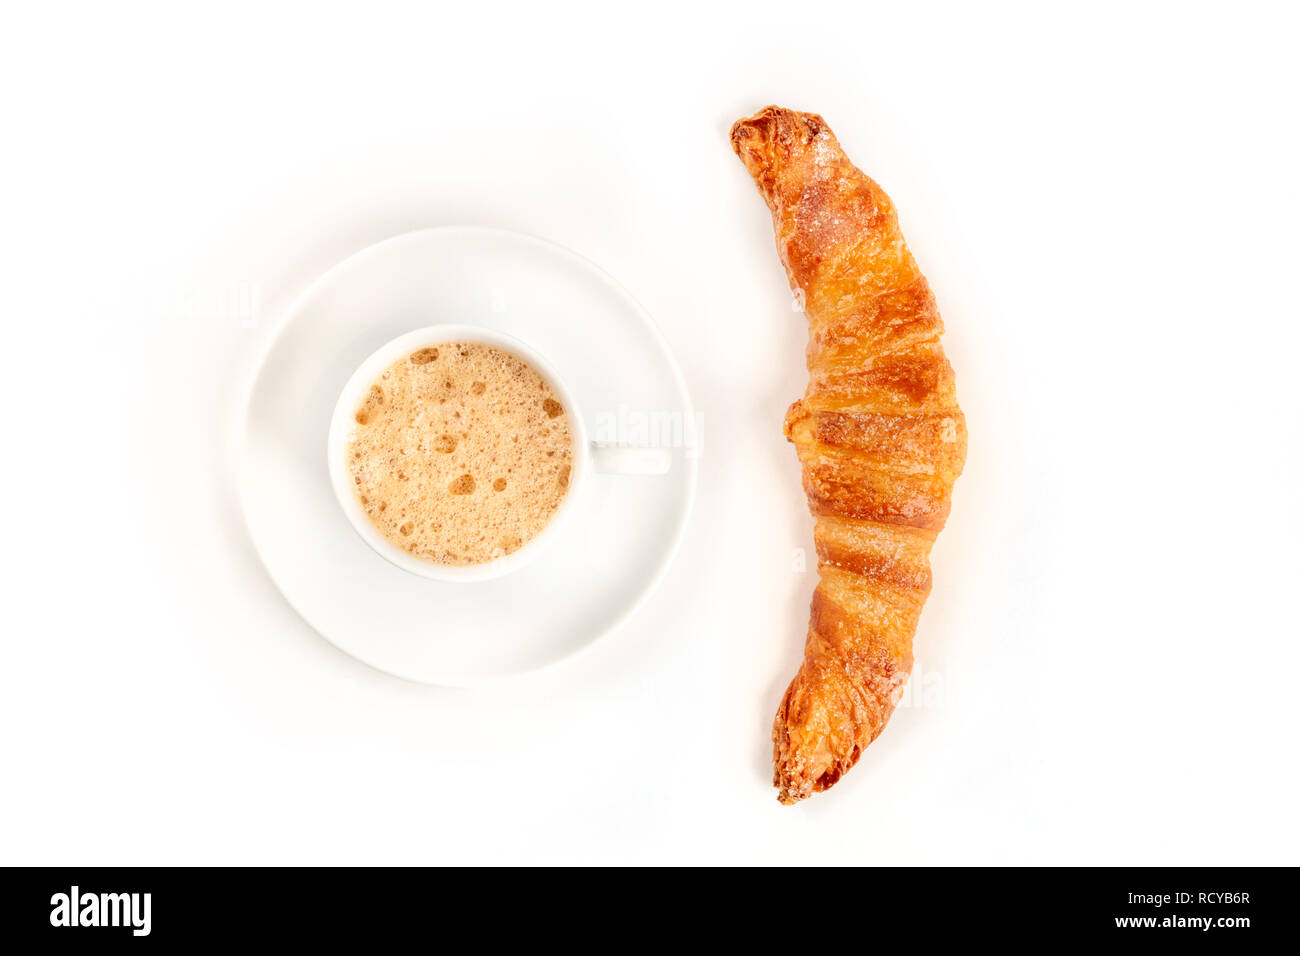 An overhead photo of a cup of coffee with a croissant, shot from above on a white background with a place for text - Stock Image